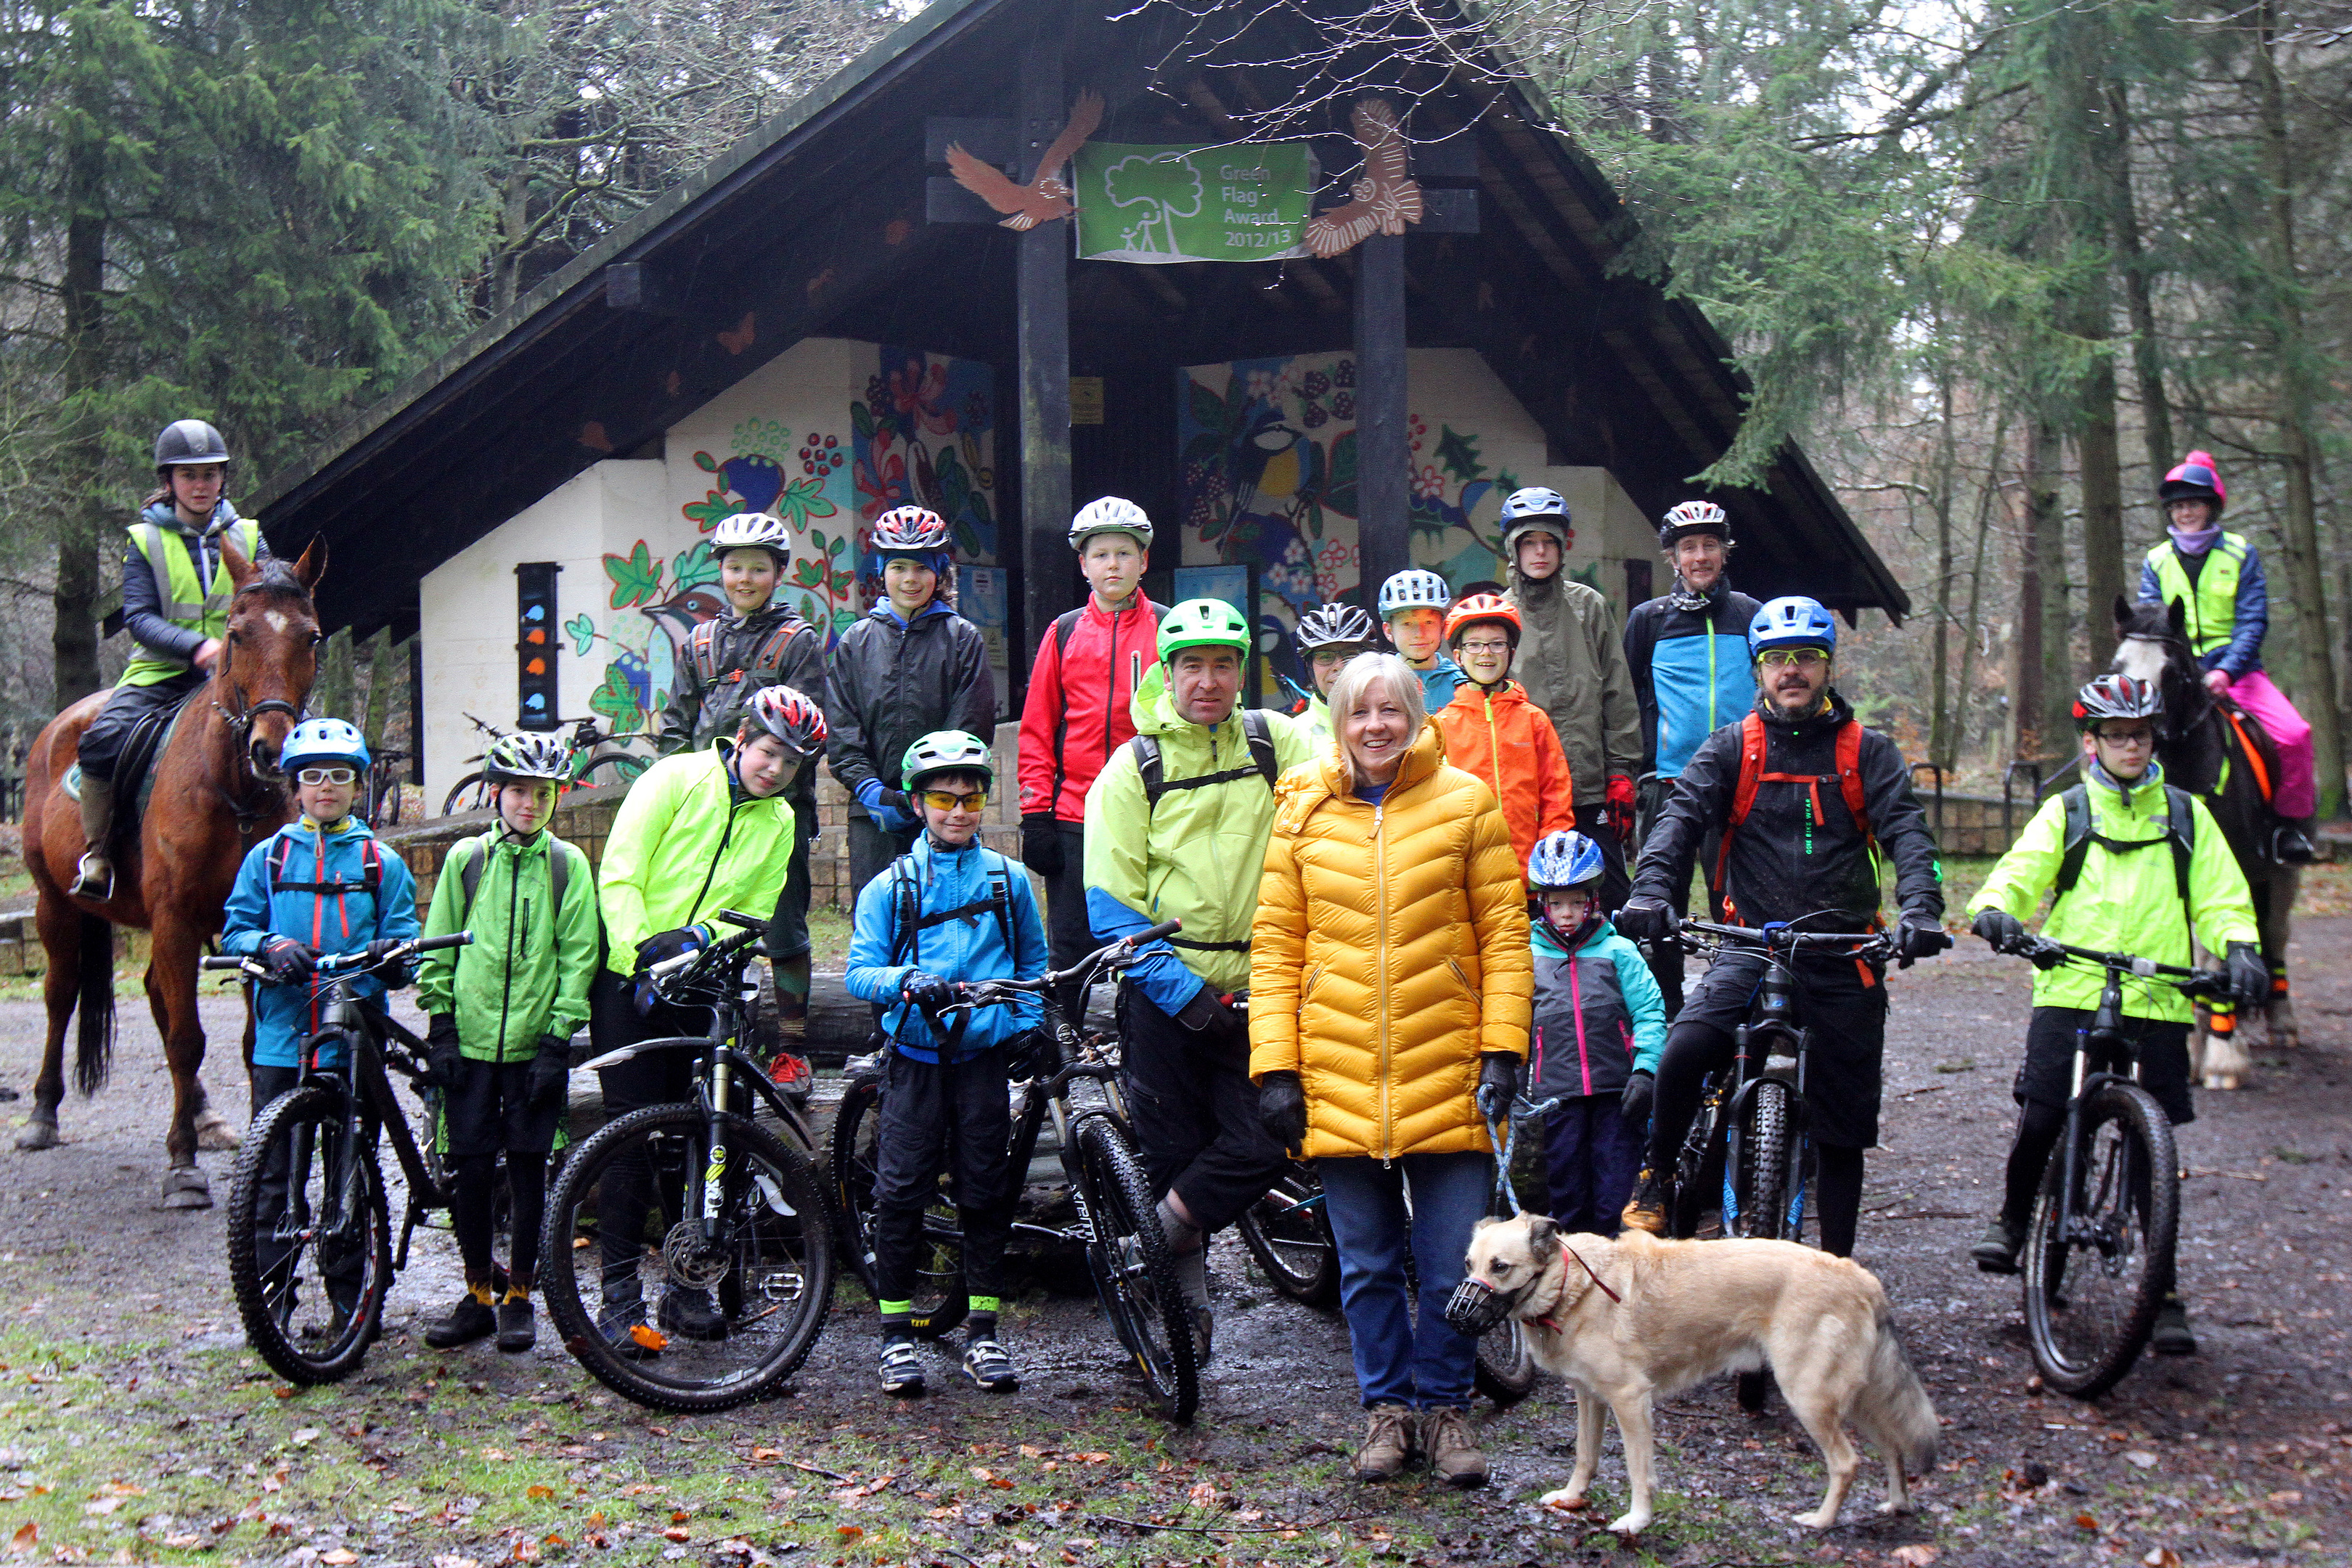 Dog walkers, horse riders and mountain bikers at Templeton Woods.